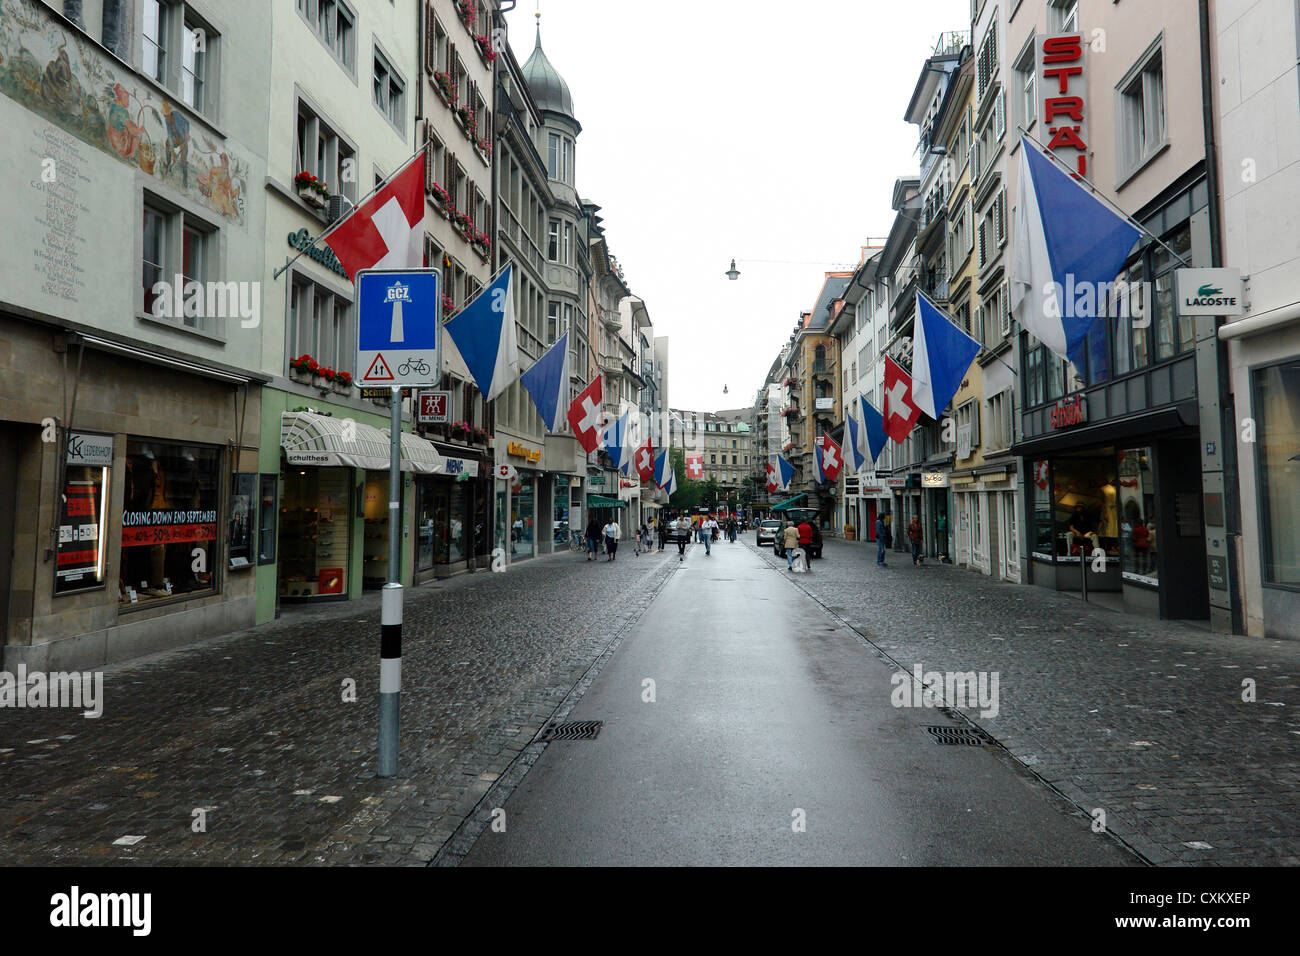 58c310cc27889 Walking in a shopping area in Zurich on a holiday. The streets were  deserted but